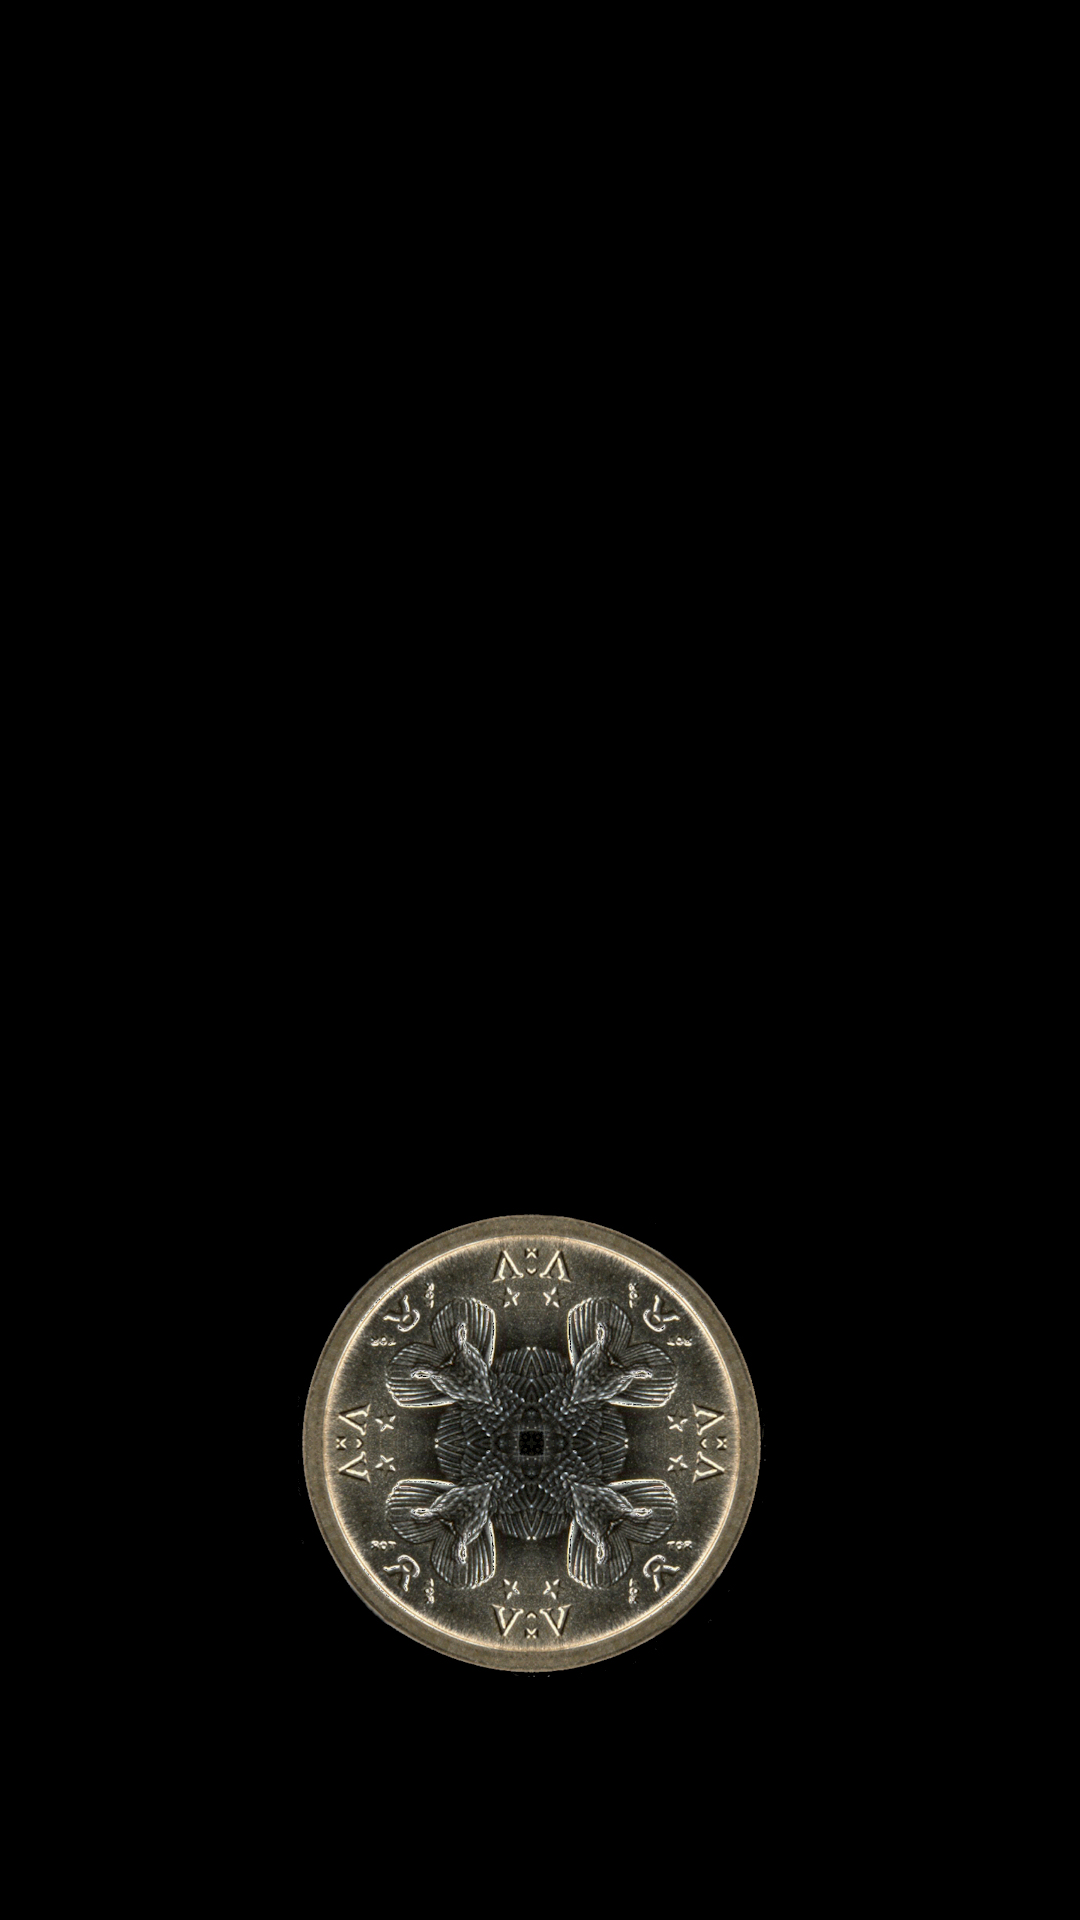 Stargate Coin Cell Phone Wallpaper by mitsubishiman on DeviantArt